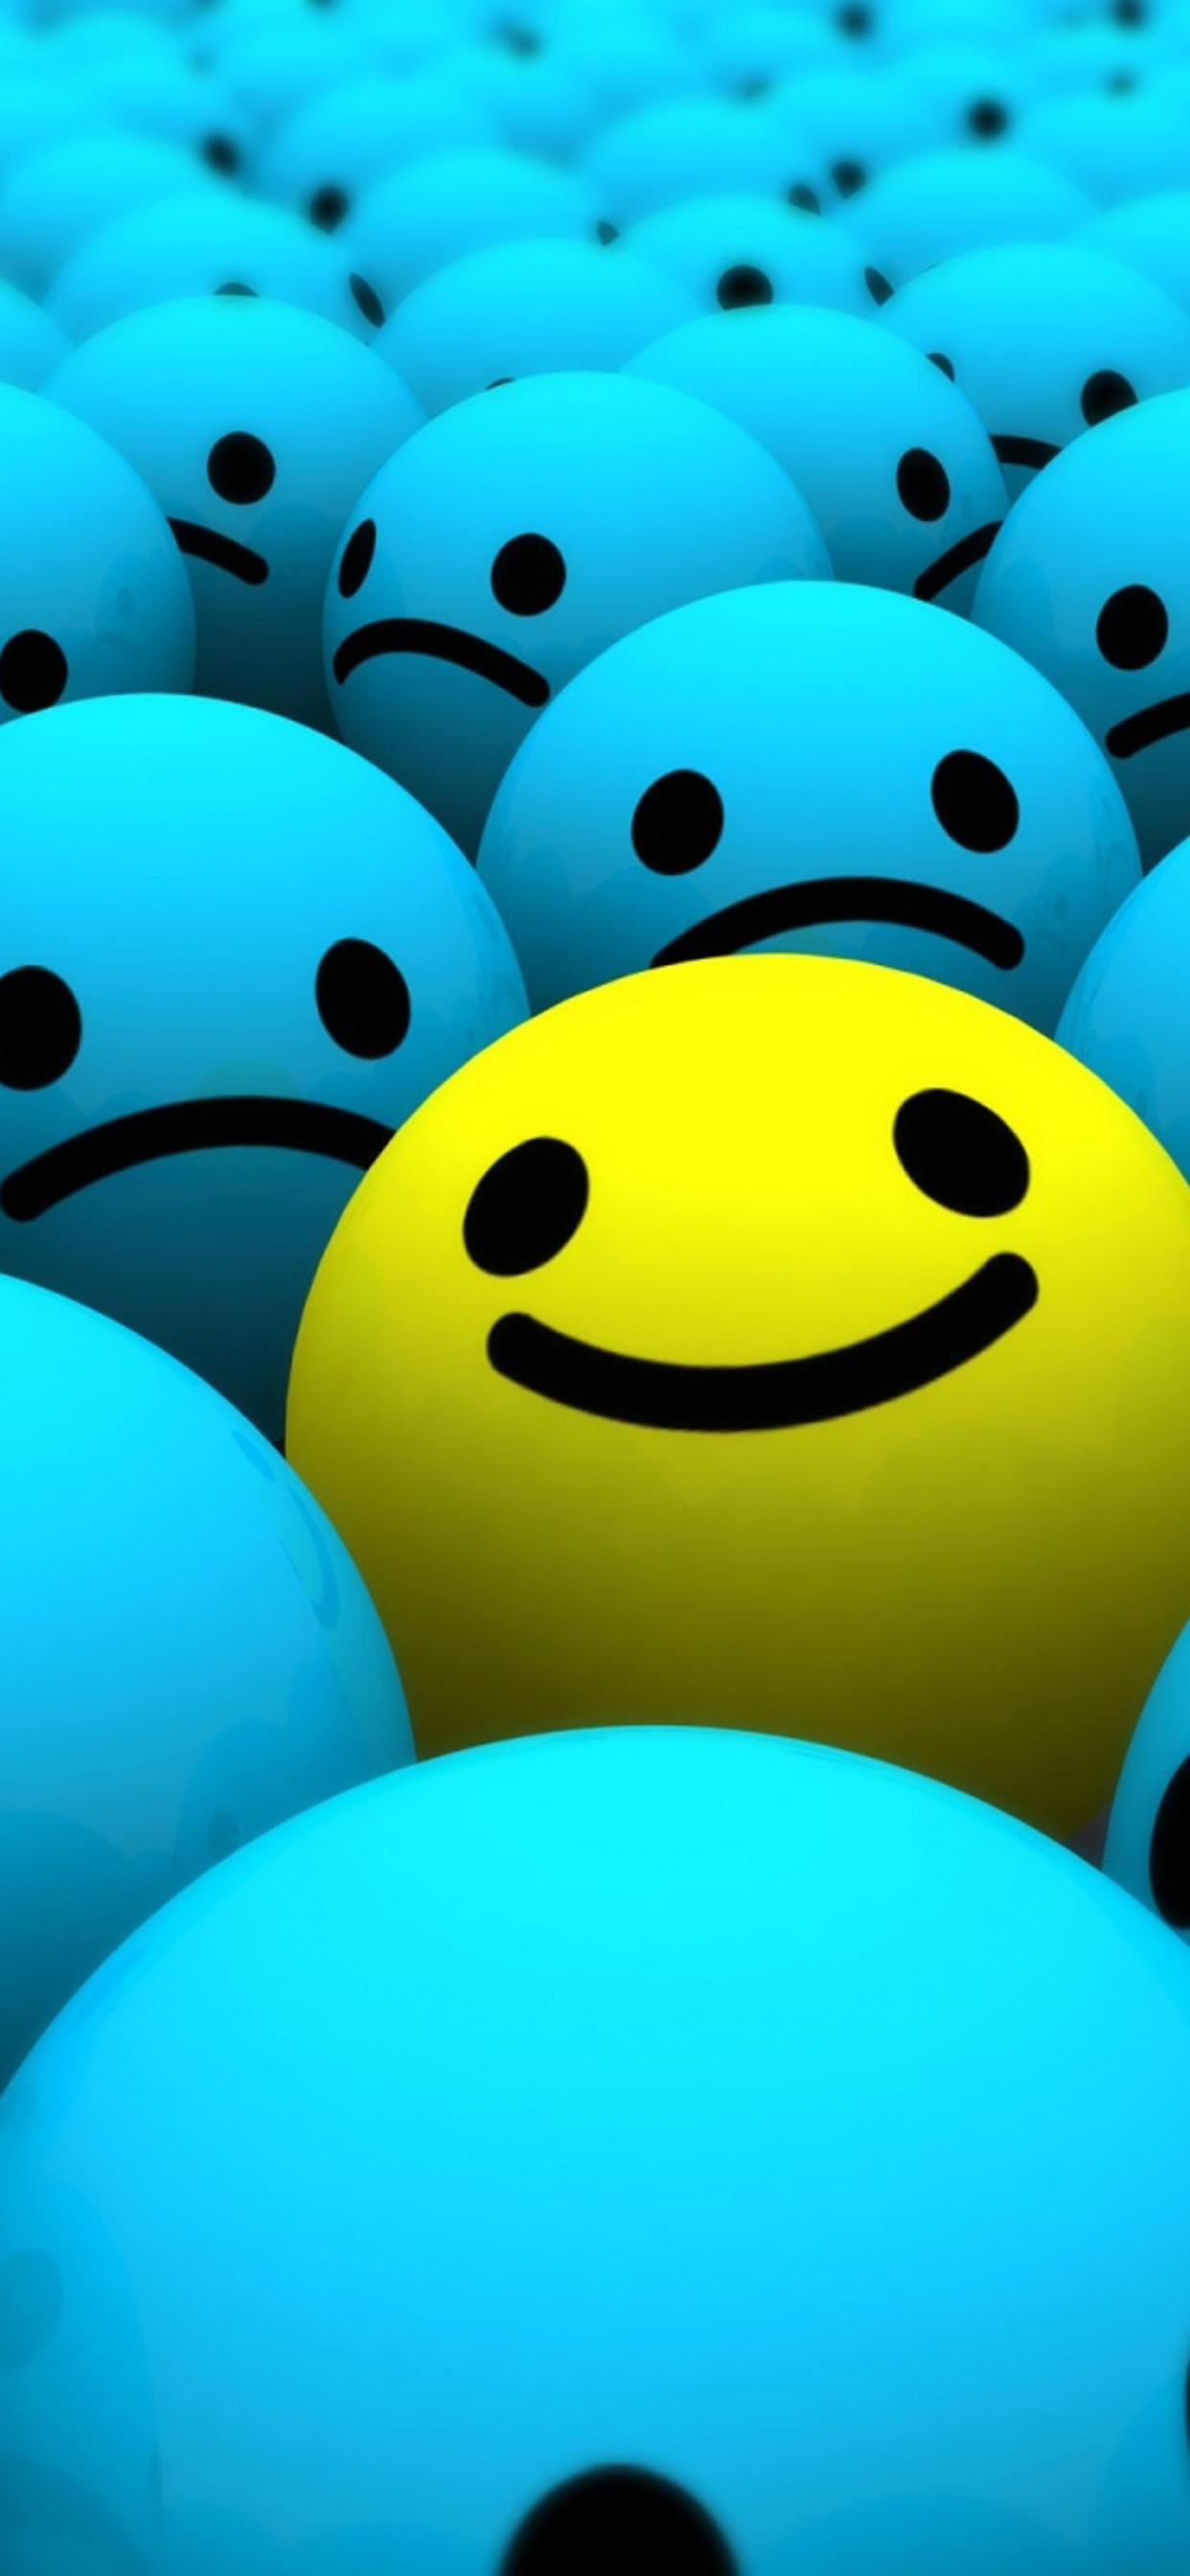 Smiley Face Blue Sad And Yelow Happy